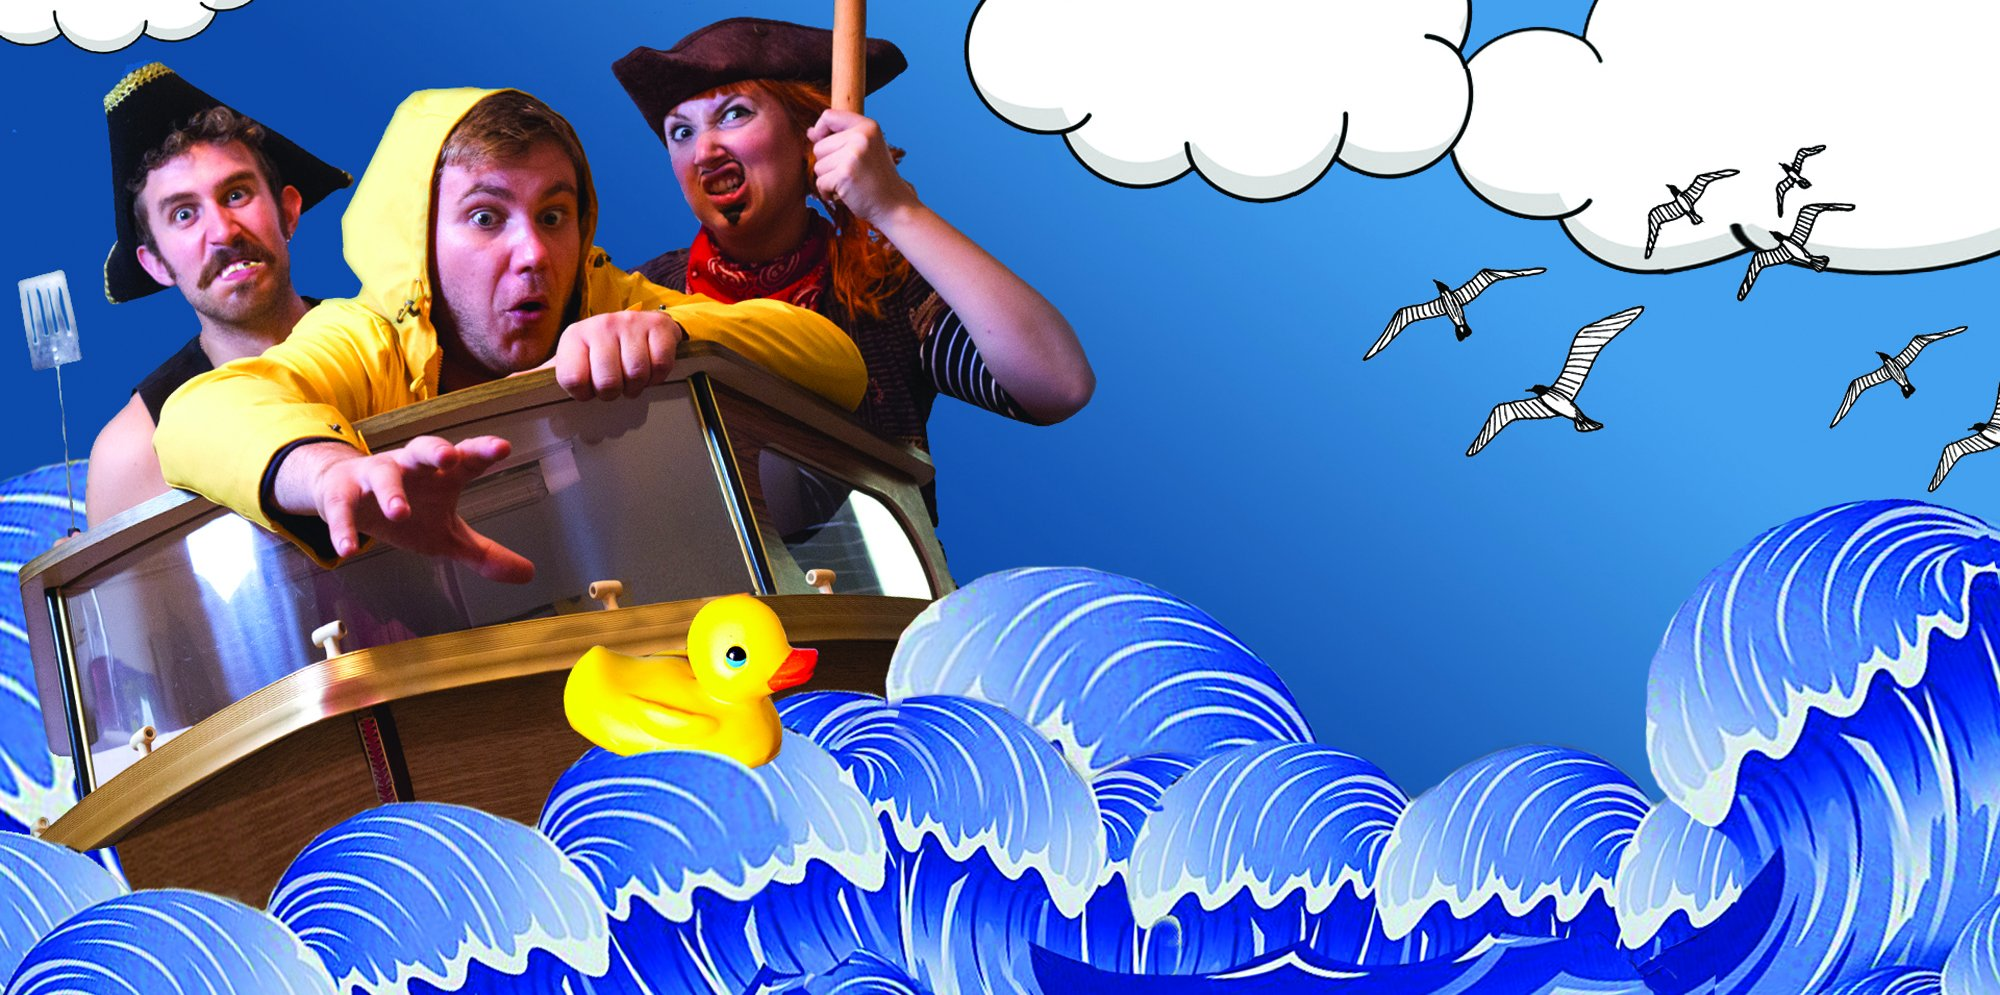 Three people are in a boat wearing pirate hates on the sea. They are reading for a rubber duck.